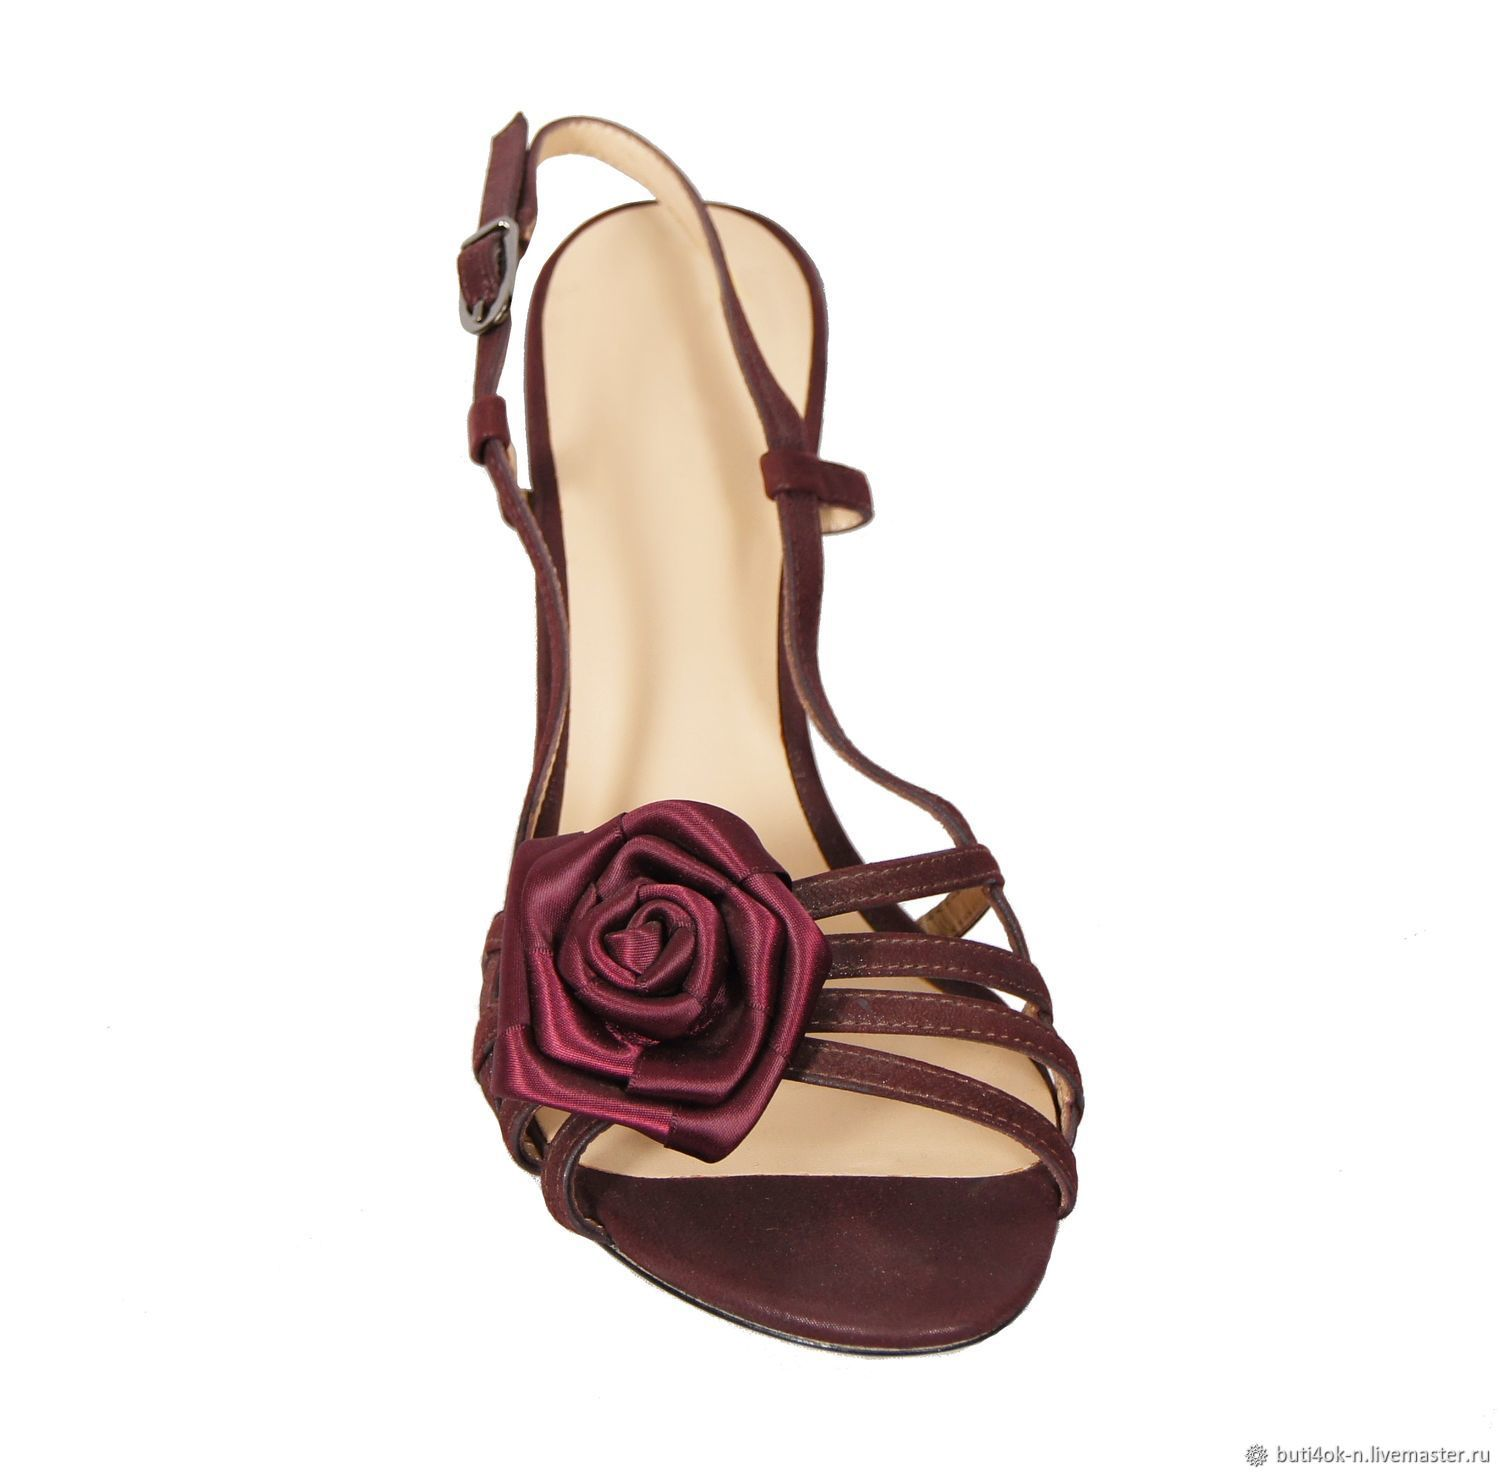 673f5c0768d Burgundy sandals made of genuine leather, decorated with satin rose – shop  online on Livemaster with shipping - FP8L1COM | Nelidovo